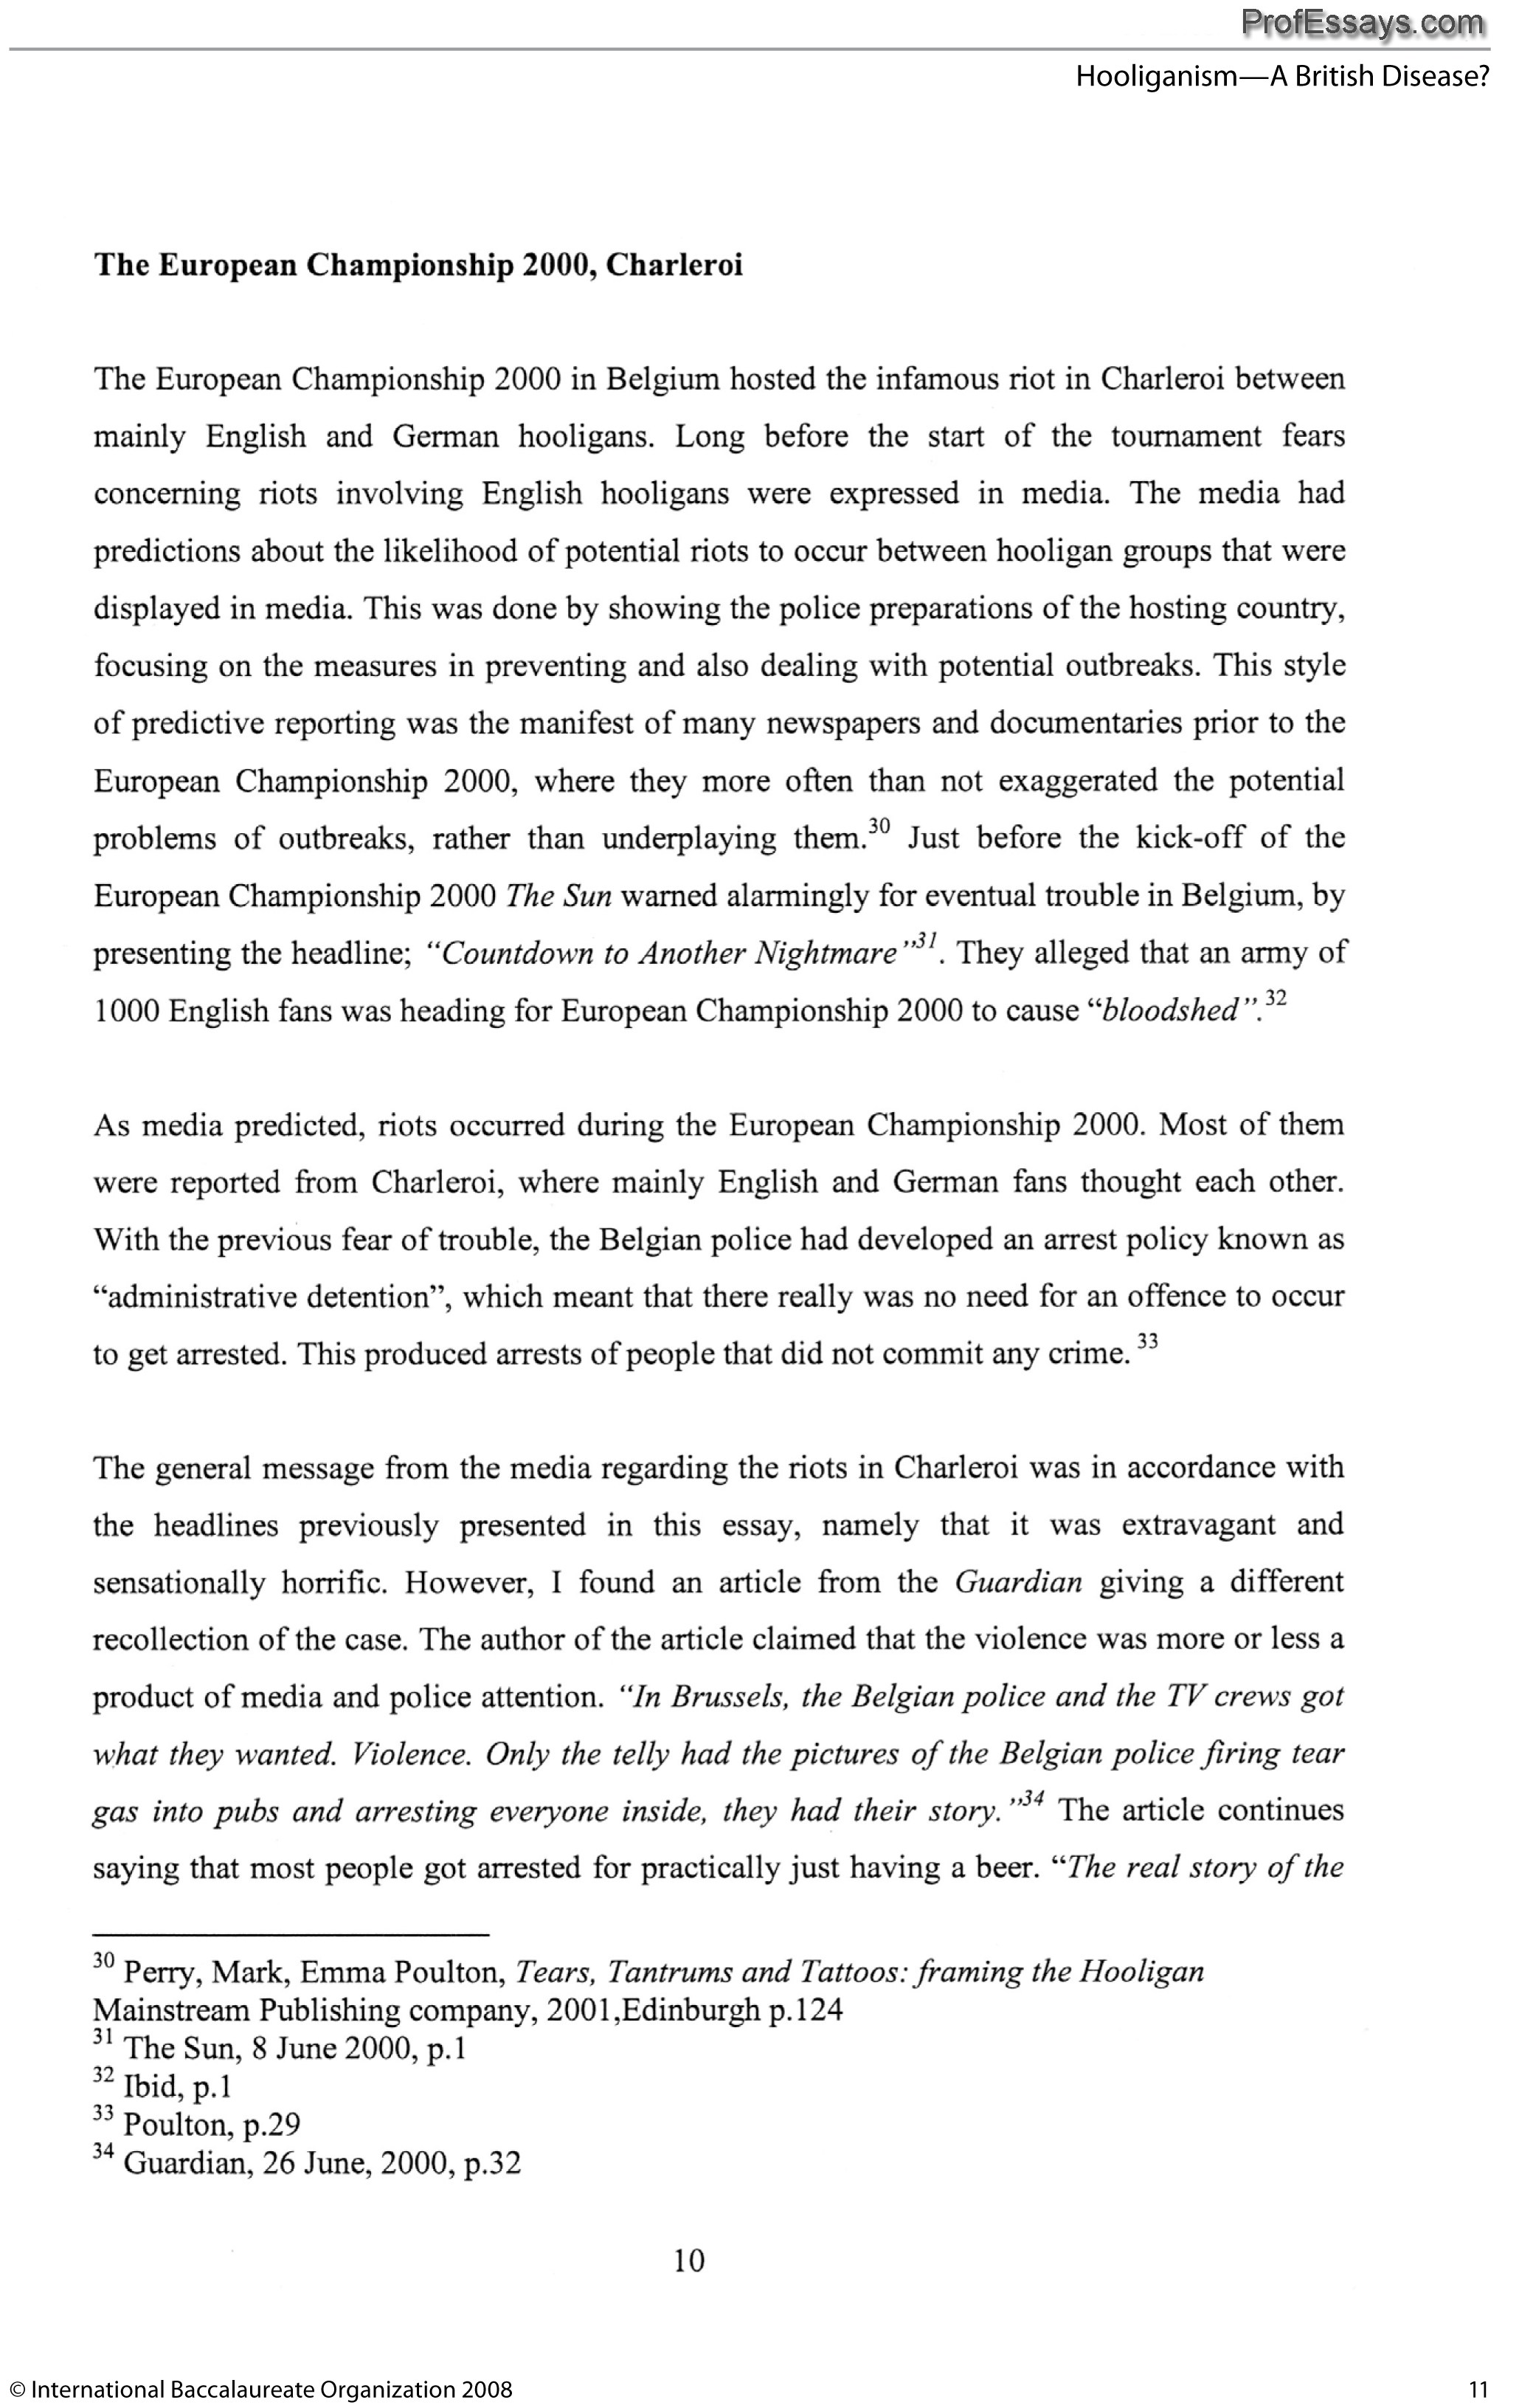 004 Essay Example Online Essays Ib Extended Free Amazing For Sale Proofreading Sell Uk Full